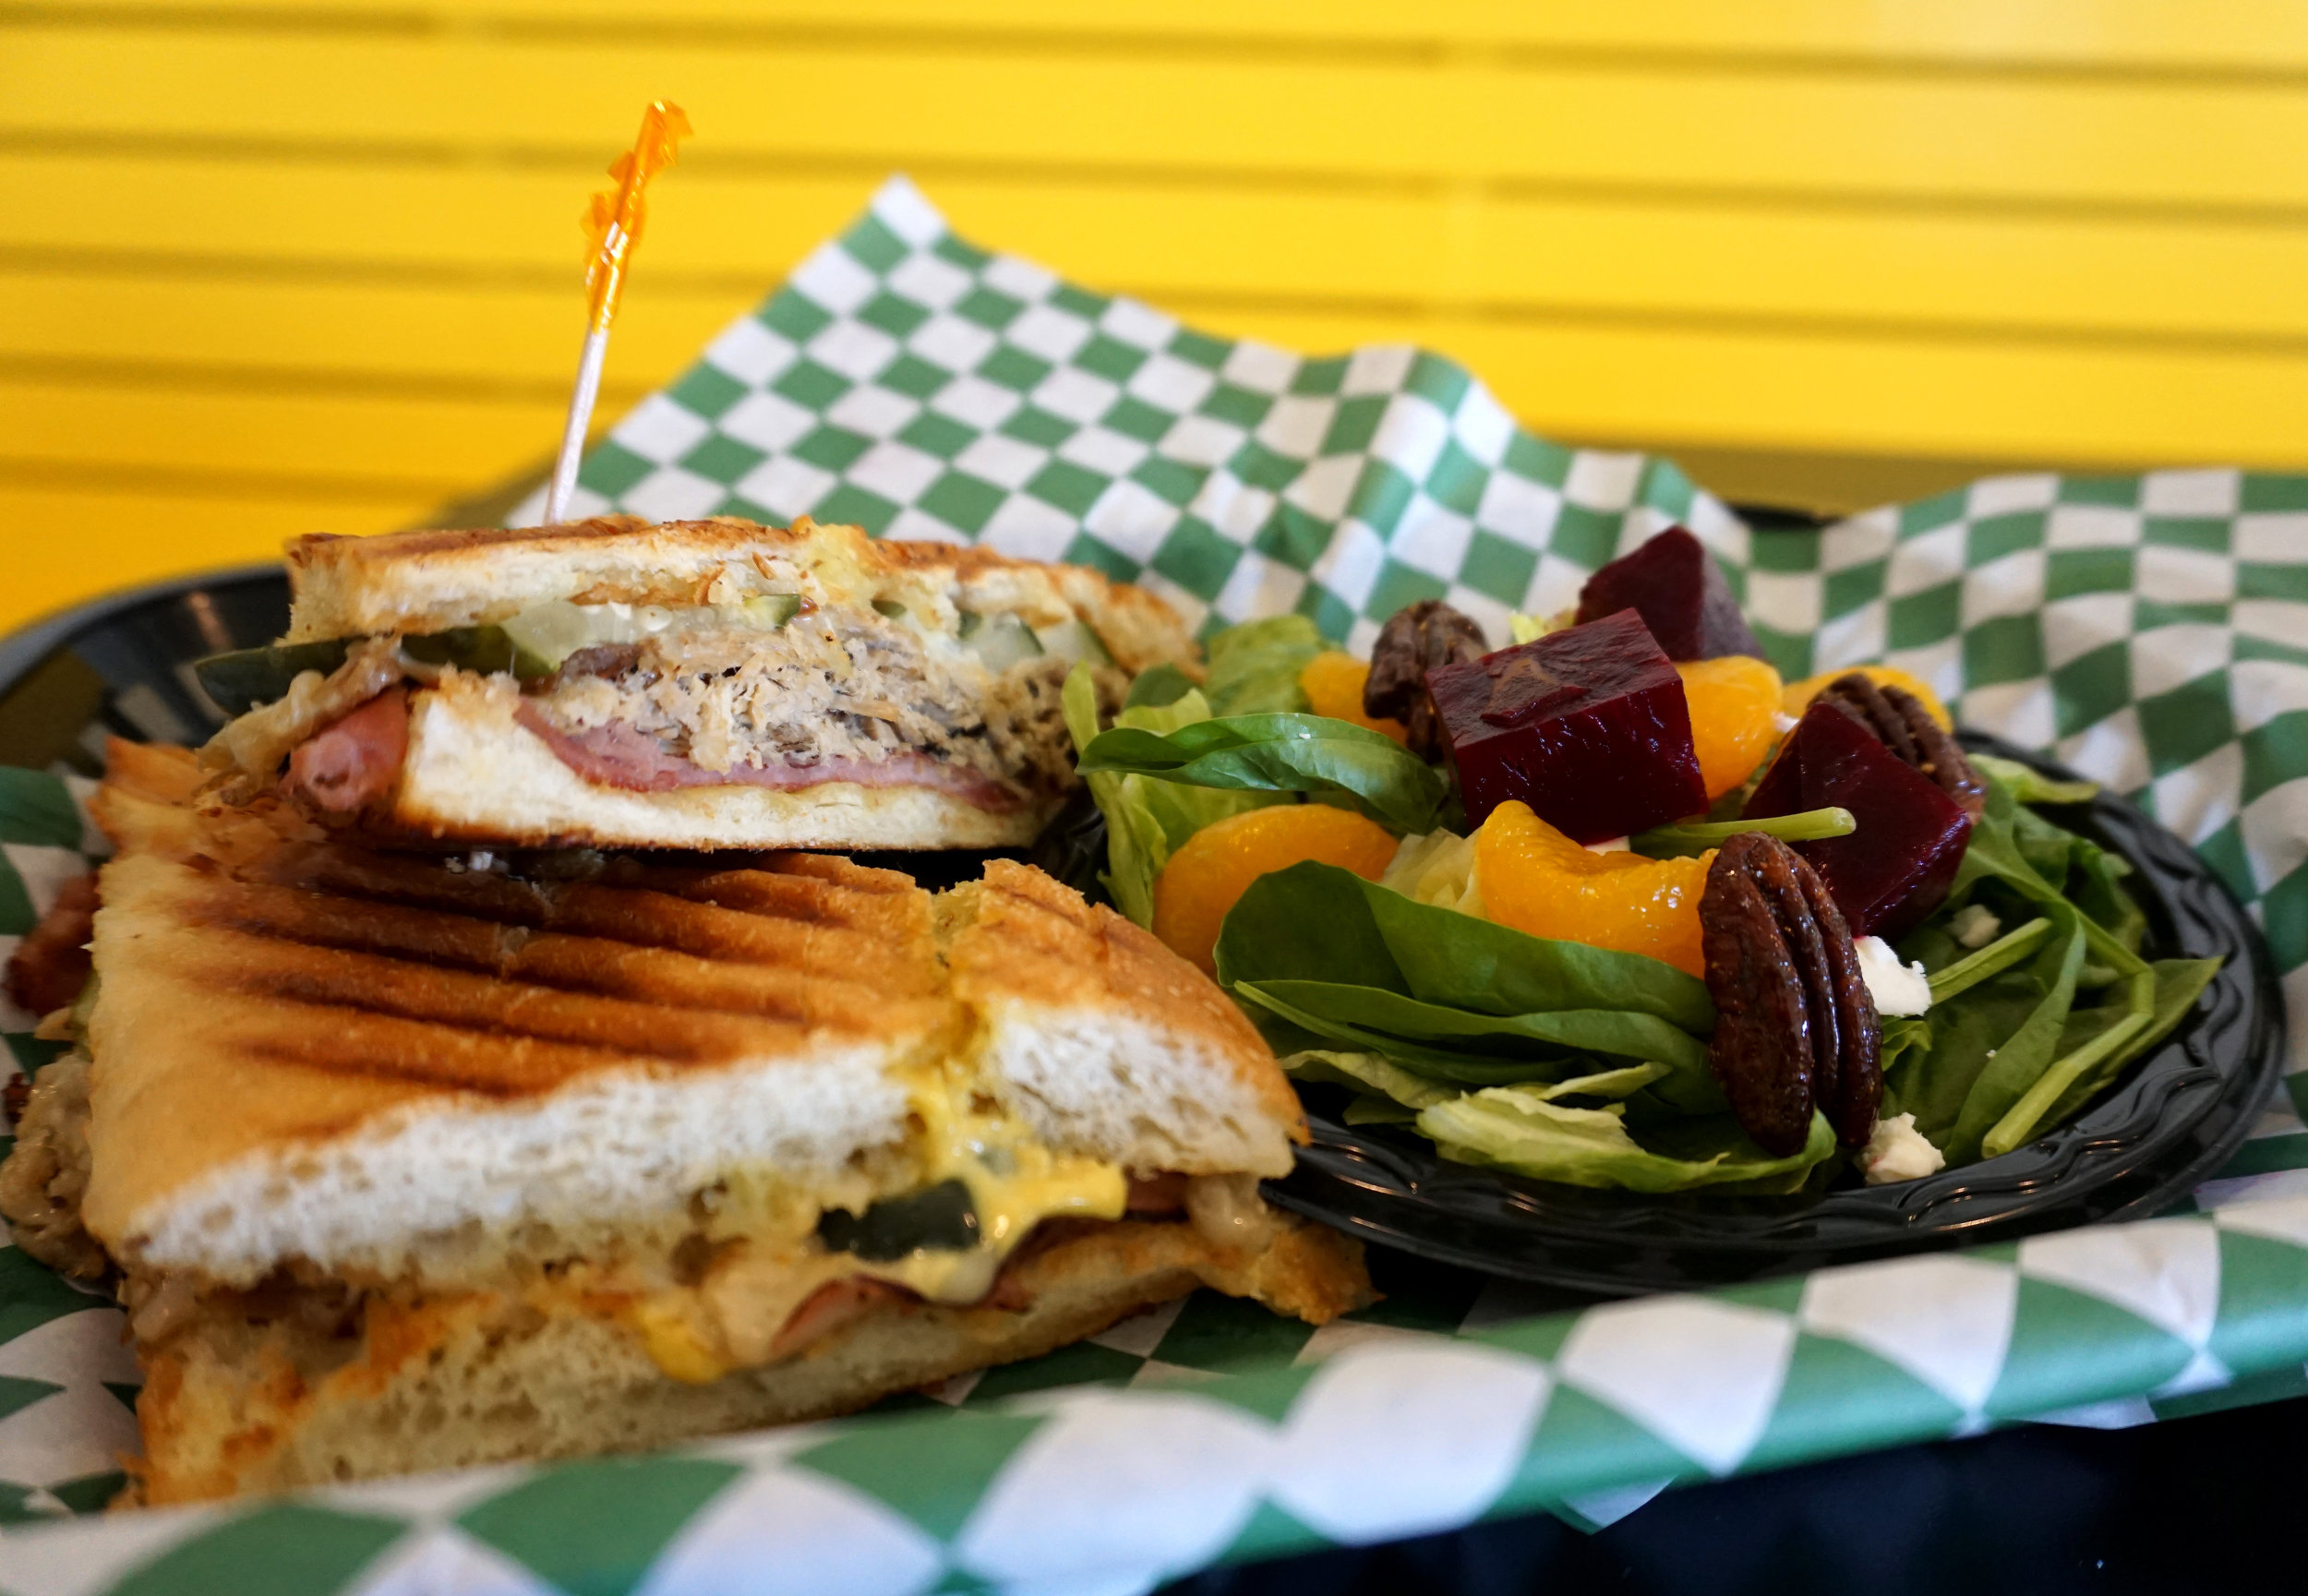 Gourmet sandwiches, salads, specialties and more...